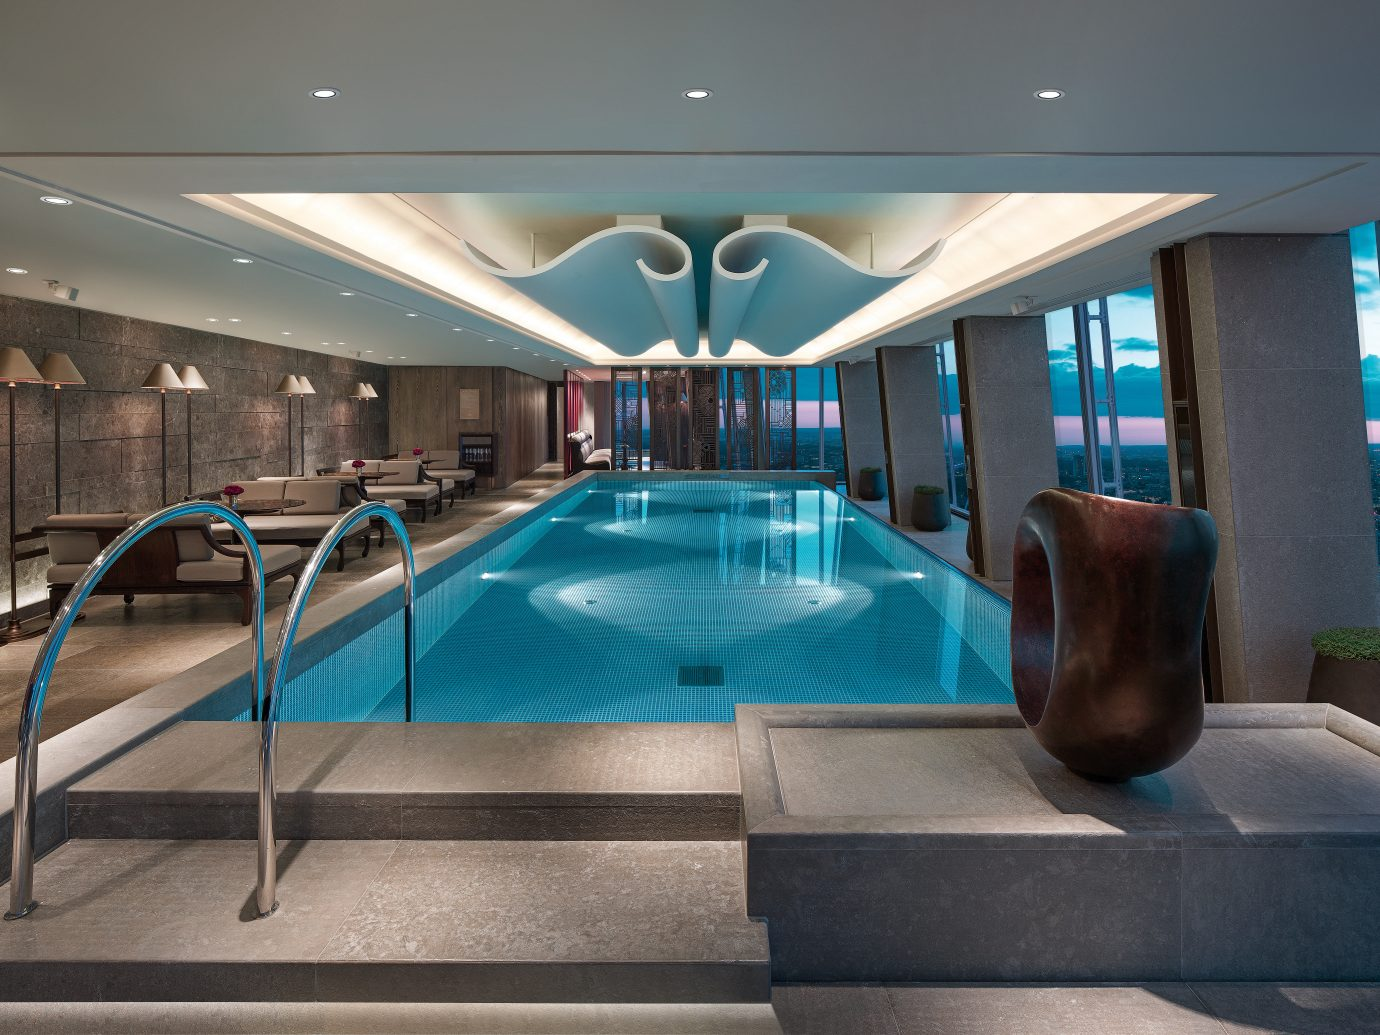 Infinity Pool At Shangri-La Hotel - The Shard In London